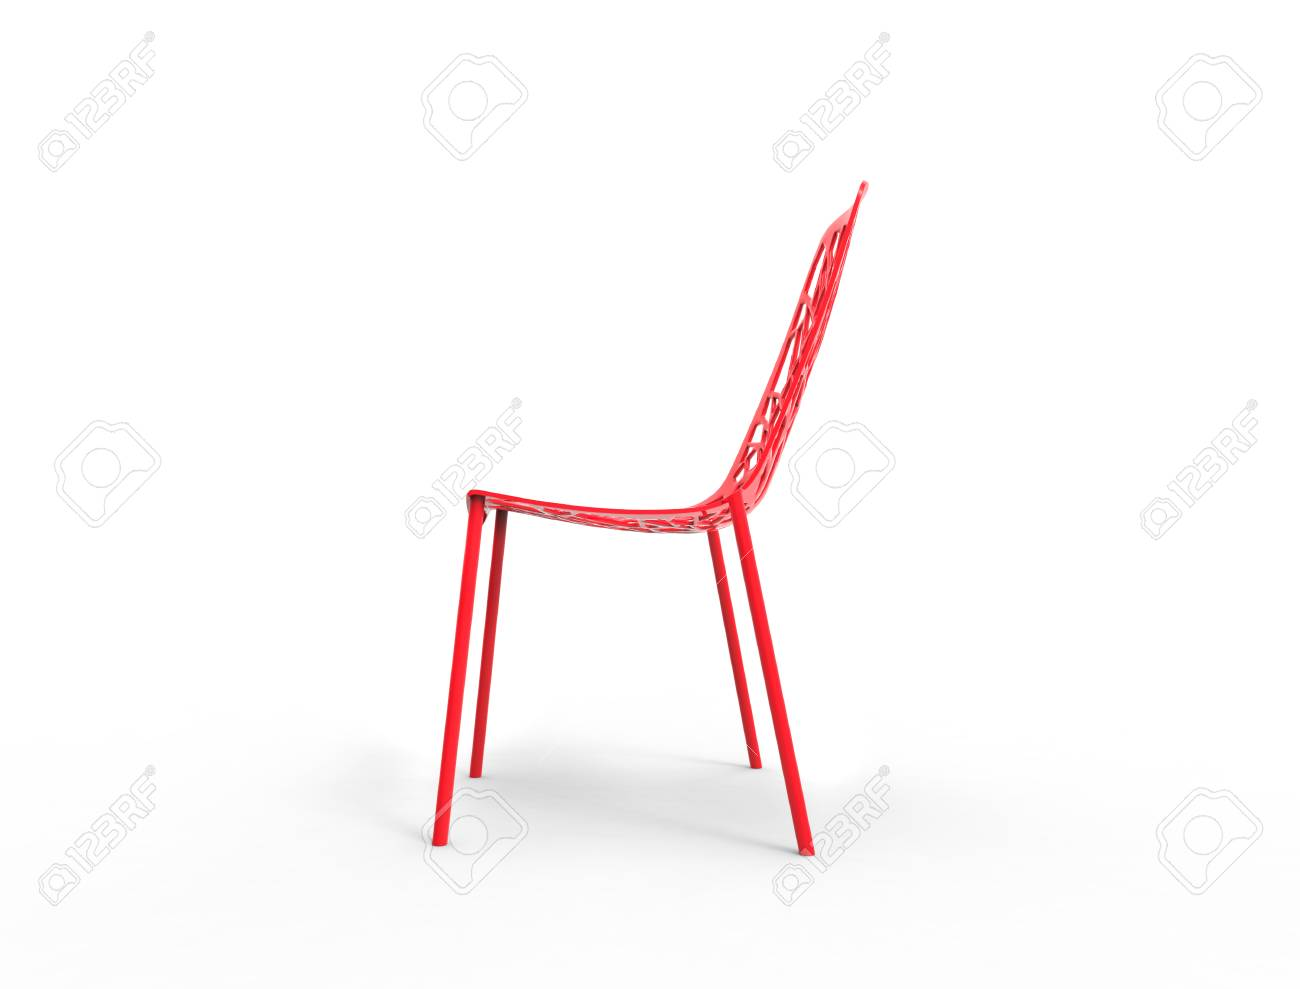 Plastic Clear Chair Modern Bright Red Clear Plastic Chair Side View